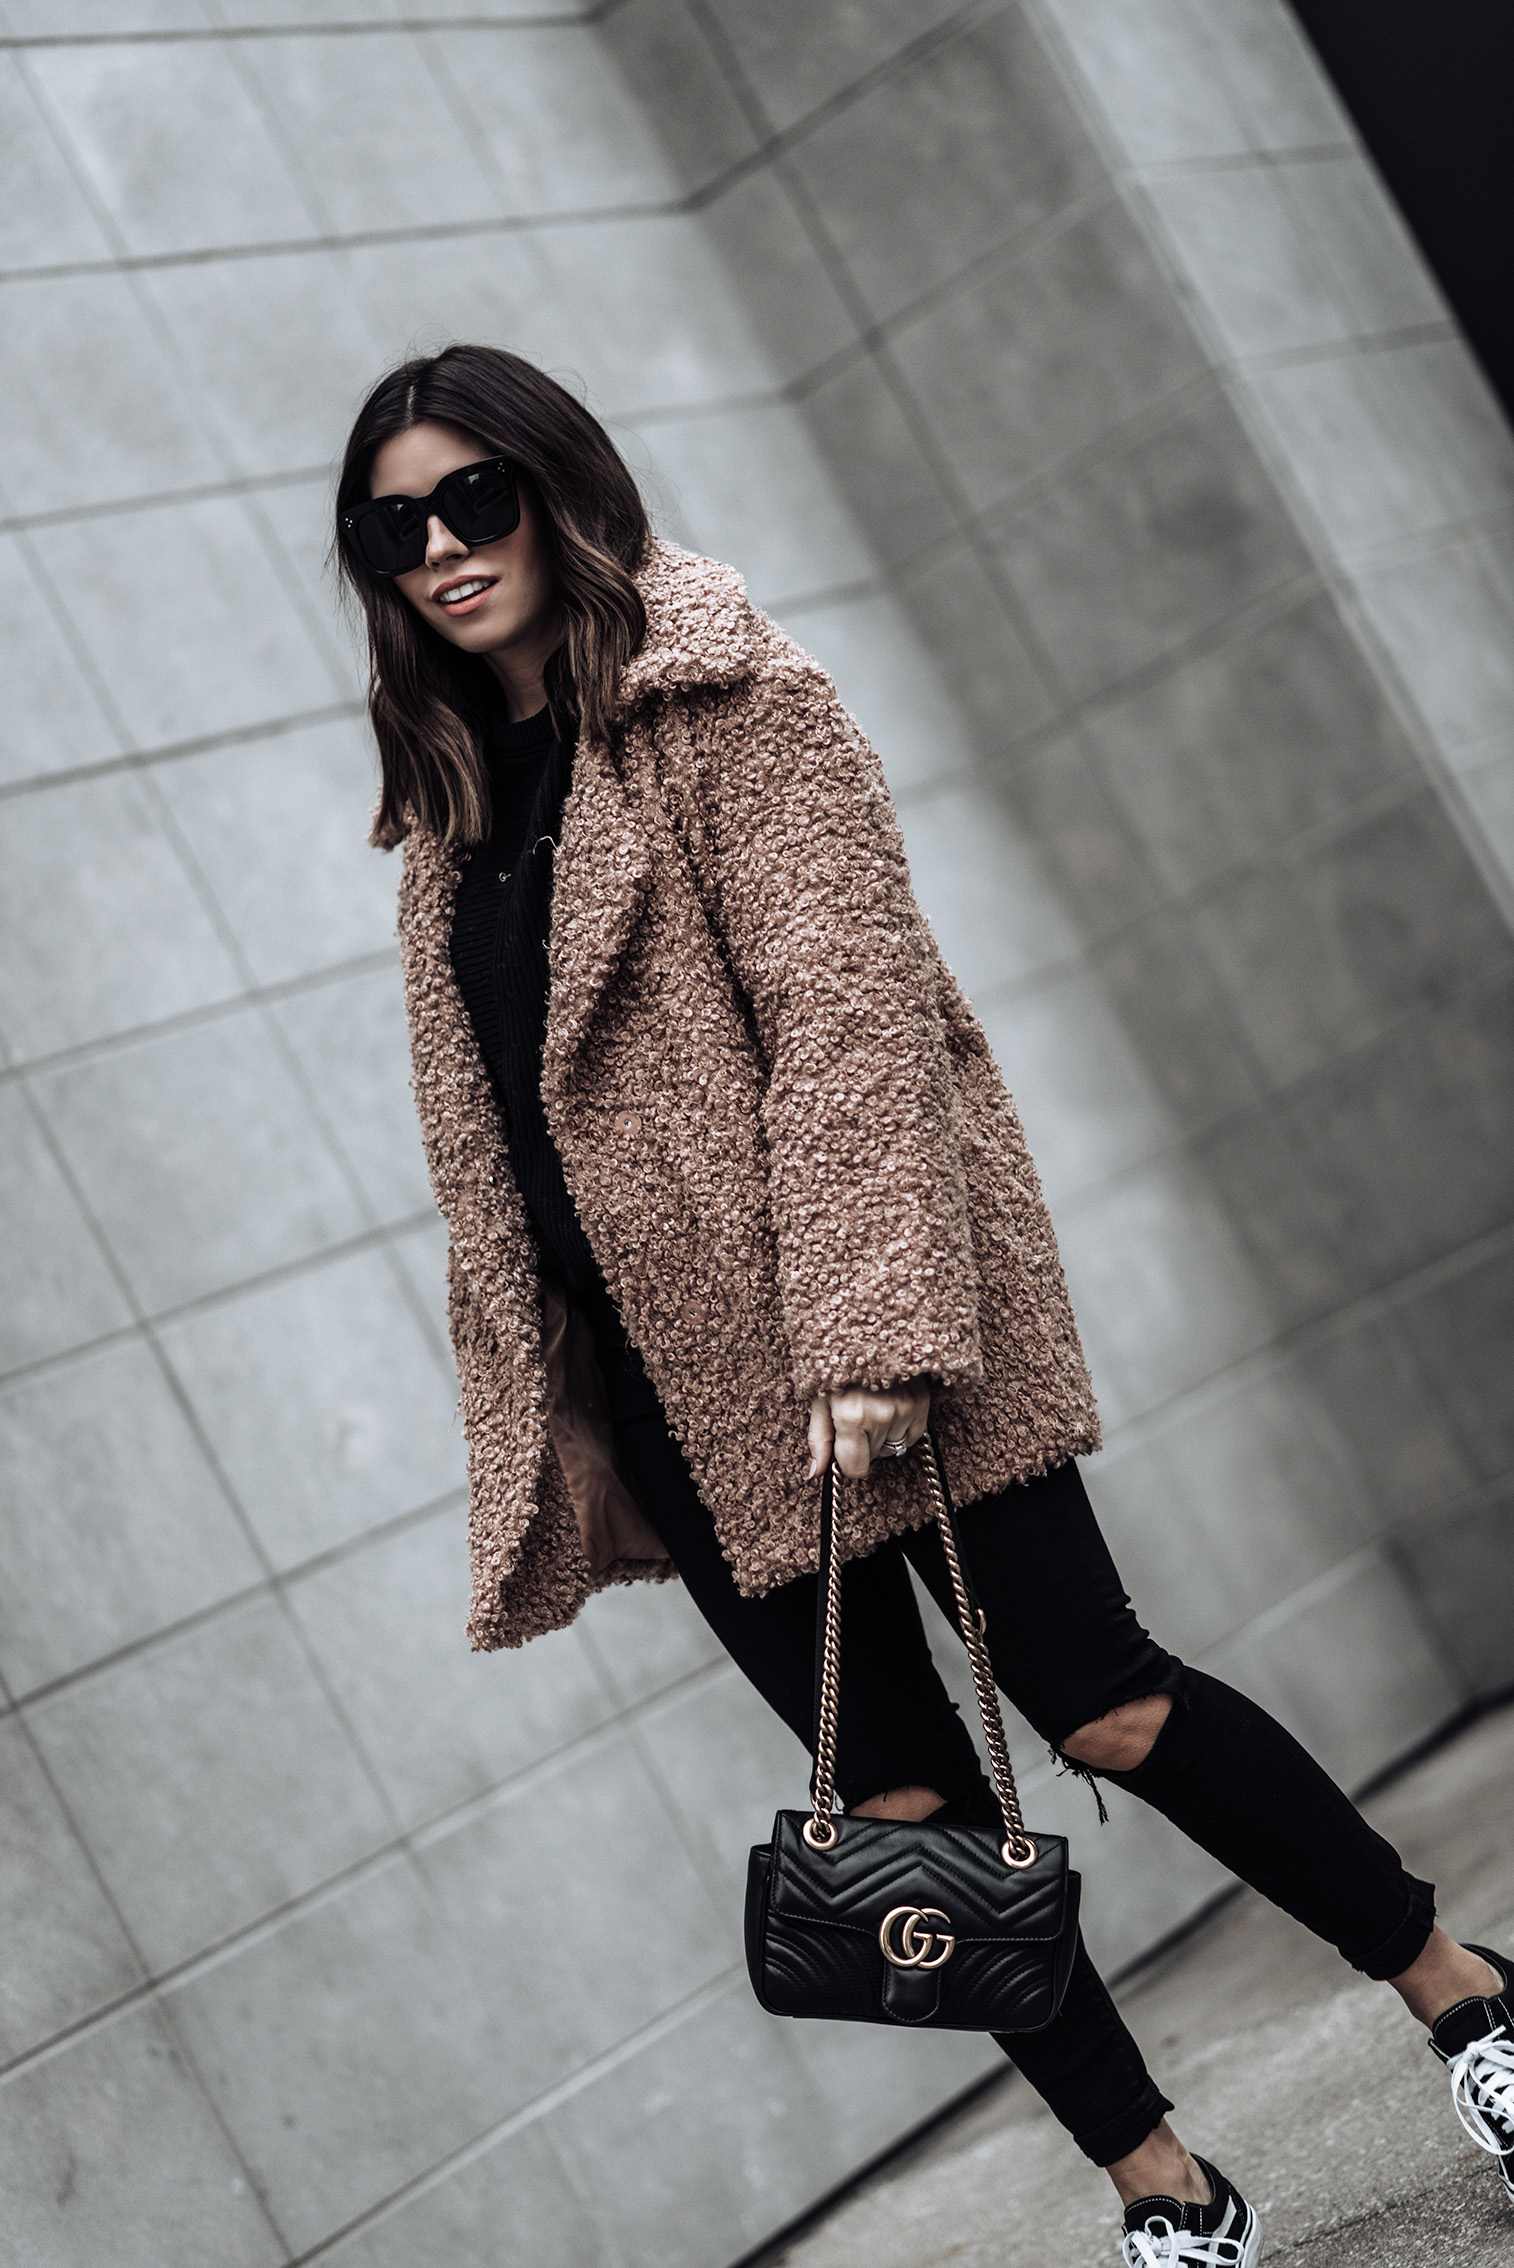 Tiffany Jais fashion and lifestyle blogger of Flaunt and Center | Houston fashion blogger | Teddy Coat | Streetstyle blog Teddy coat (similar) | G Shock Watch | Lovers + Friends Mason High-Rise Skinny Jeans | Vans Old Skool Sneakers | Gucci marmot Bag |